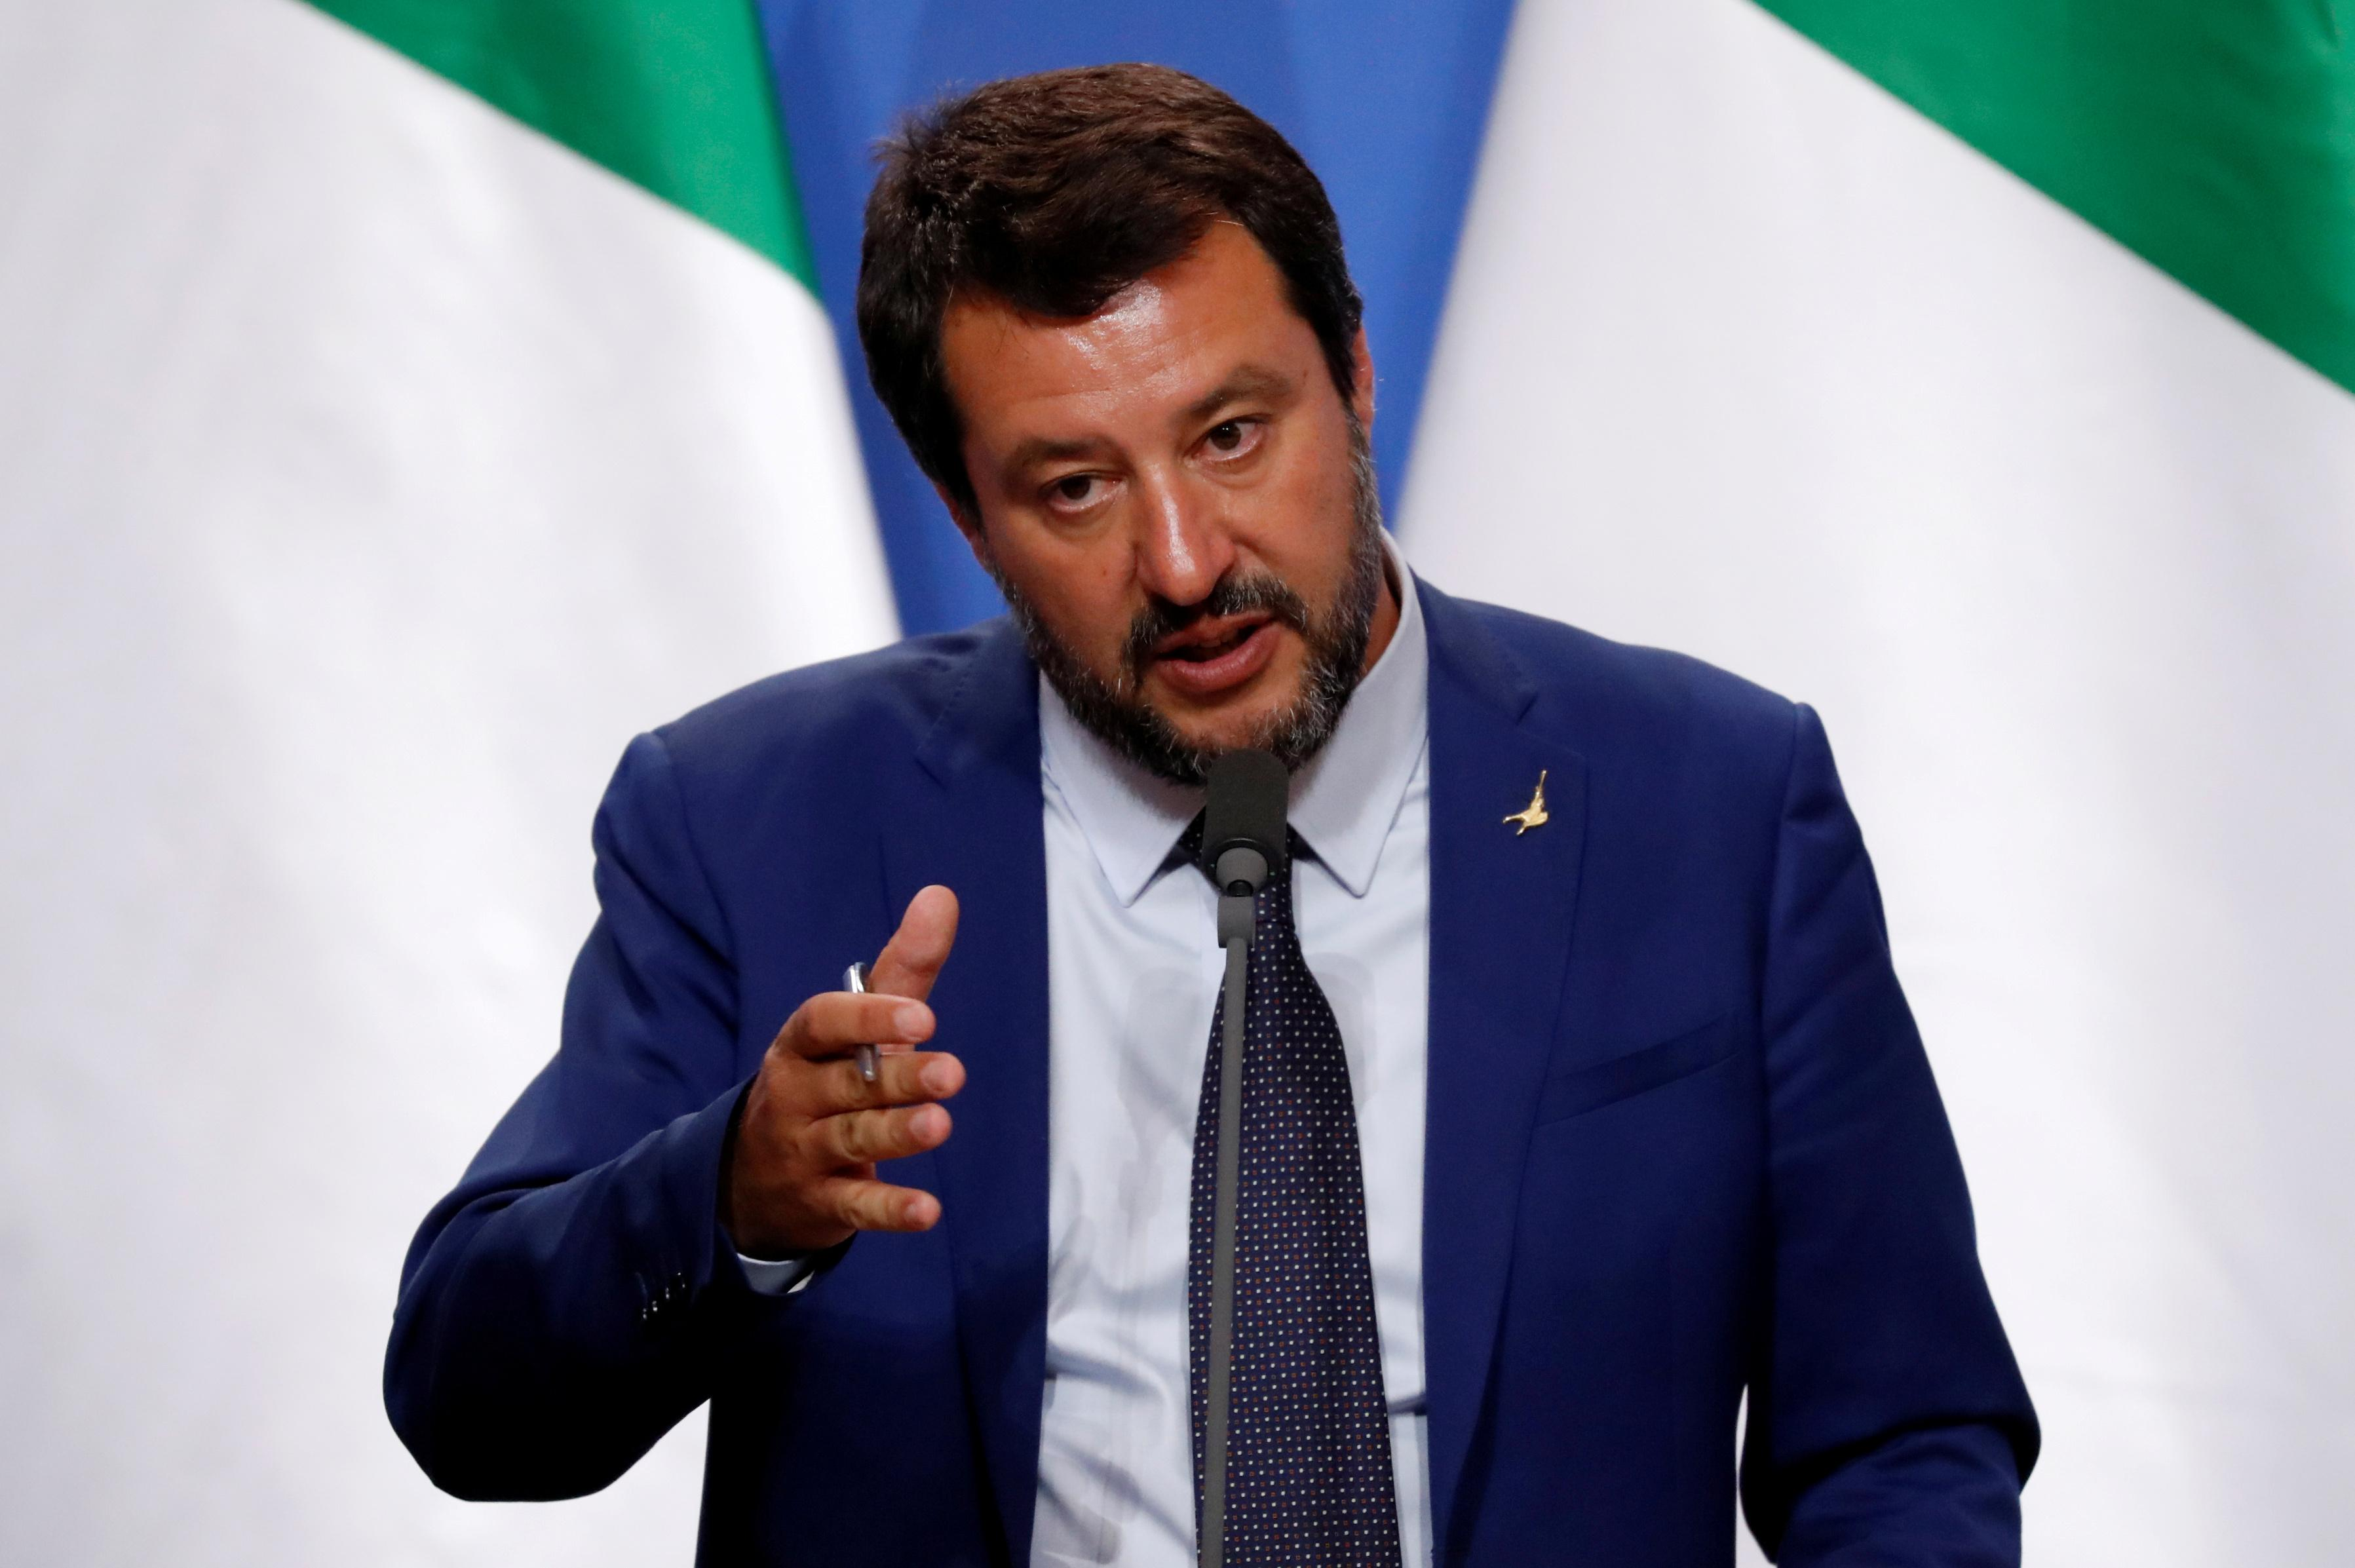 Italy should name new EU affairs minister next week